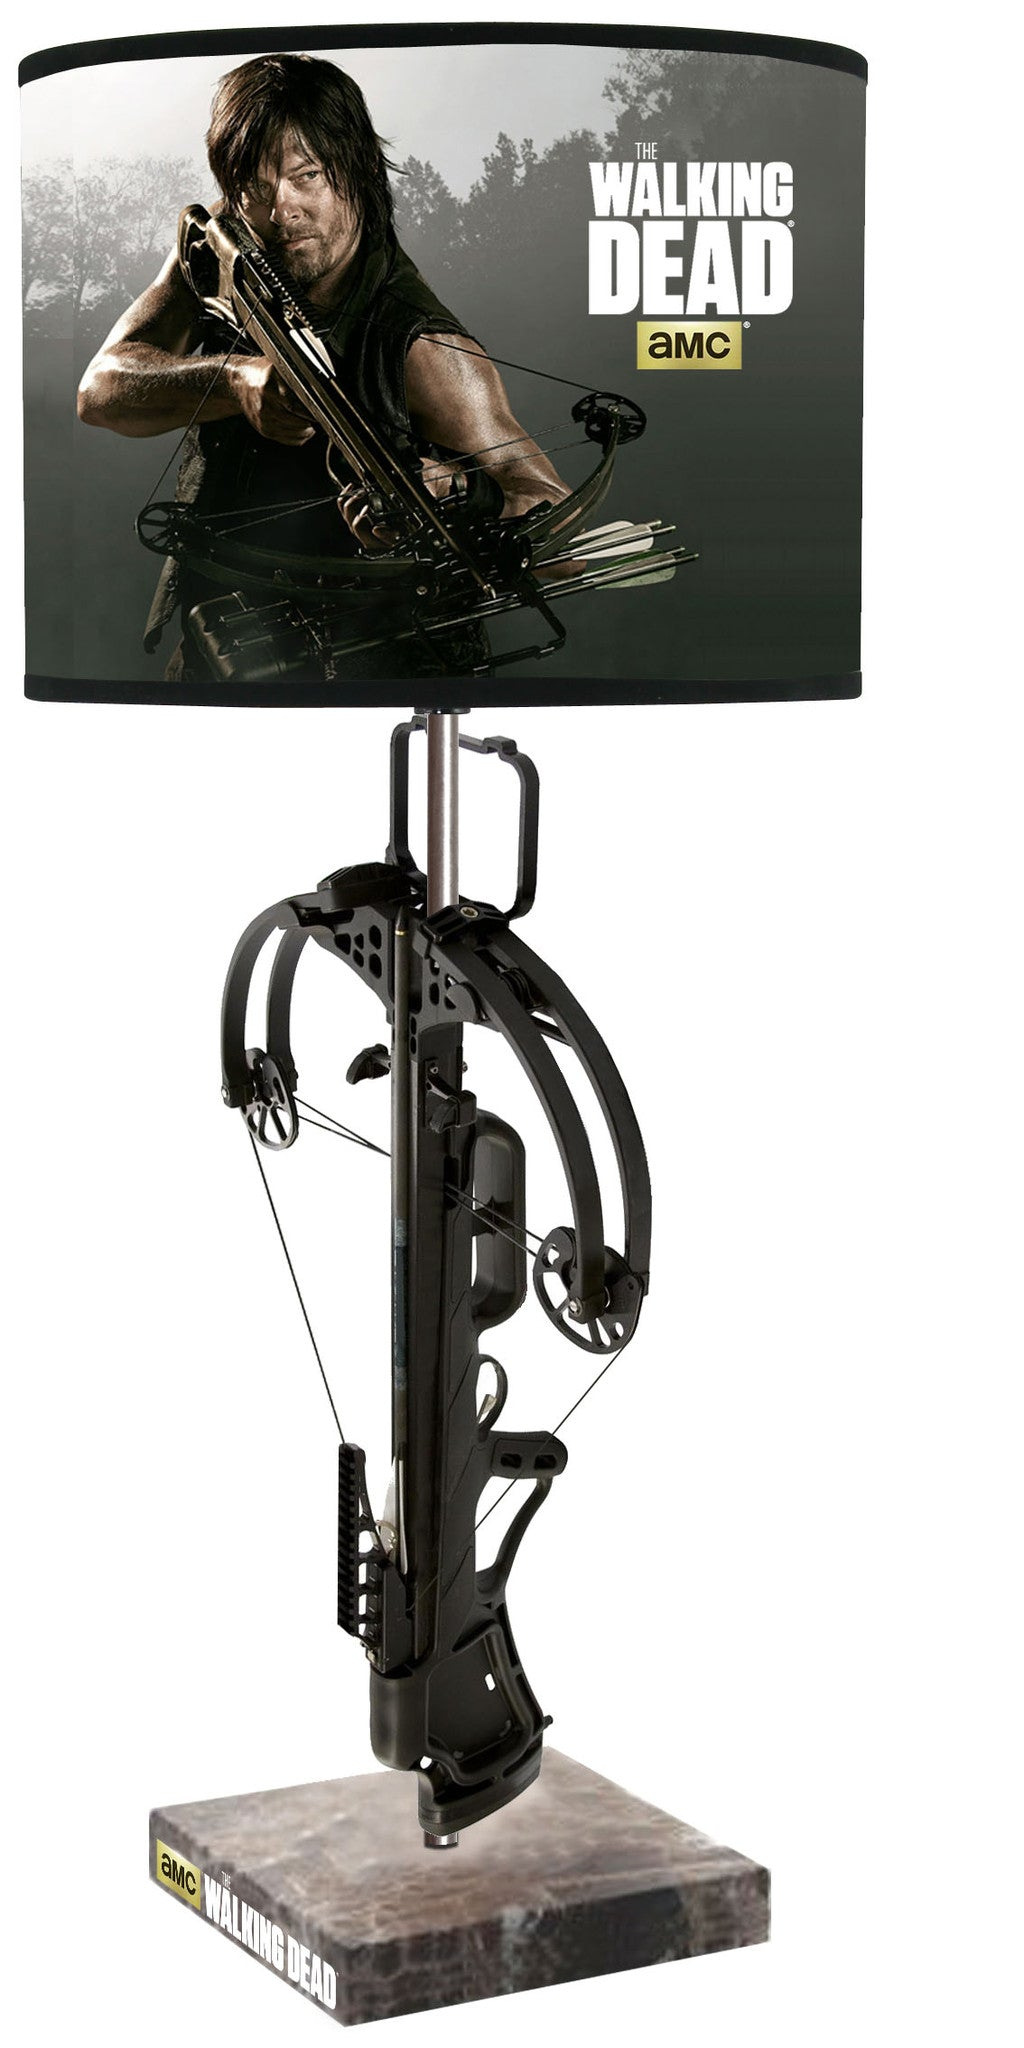 The Walking Dead Daryl Dixon Crossbow Lamp - Showtimesavvy